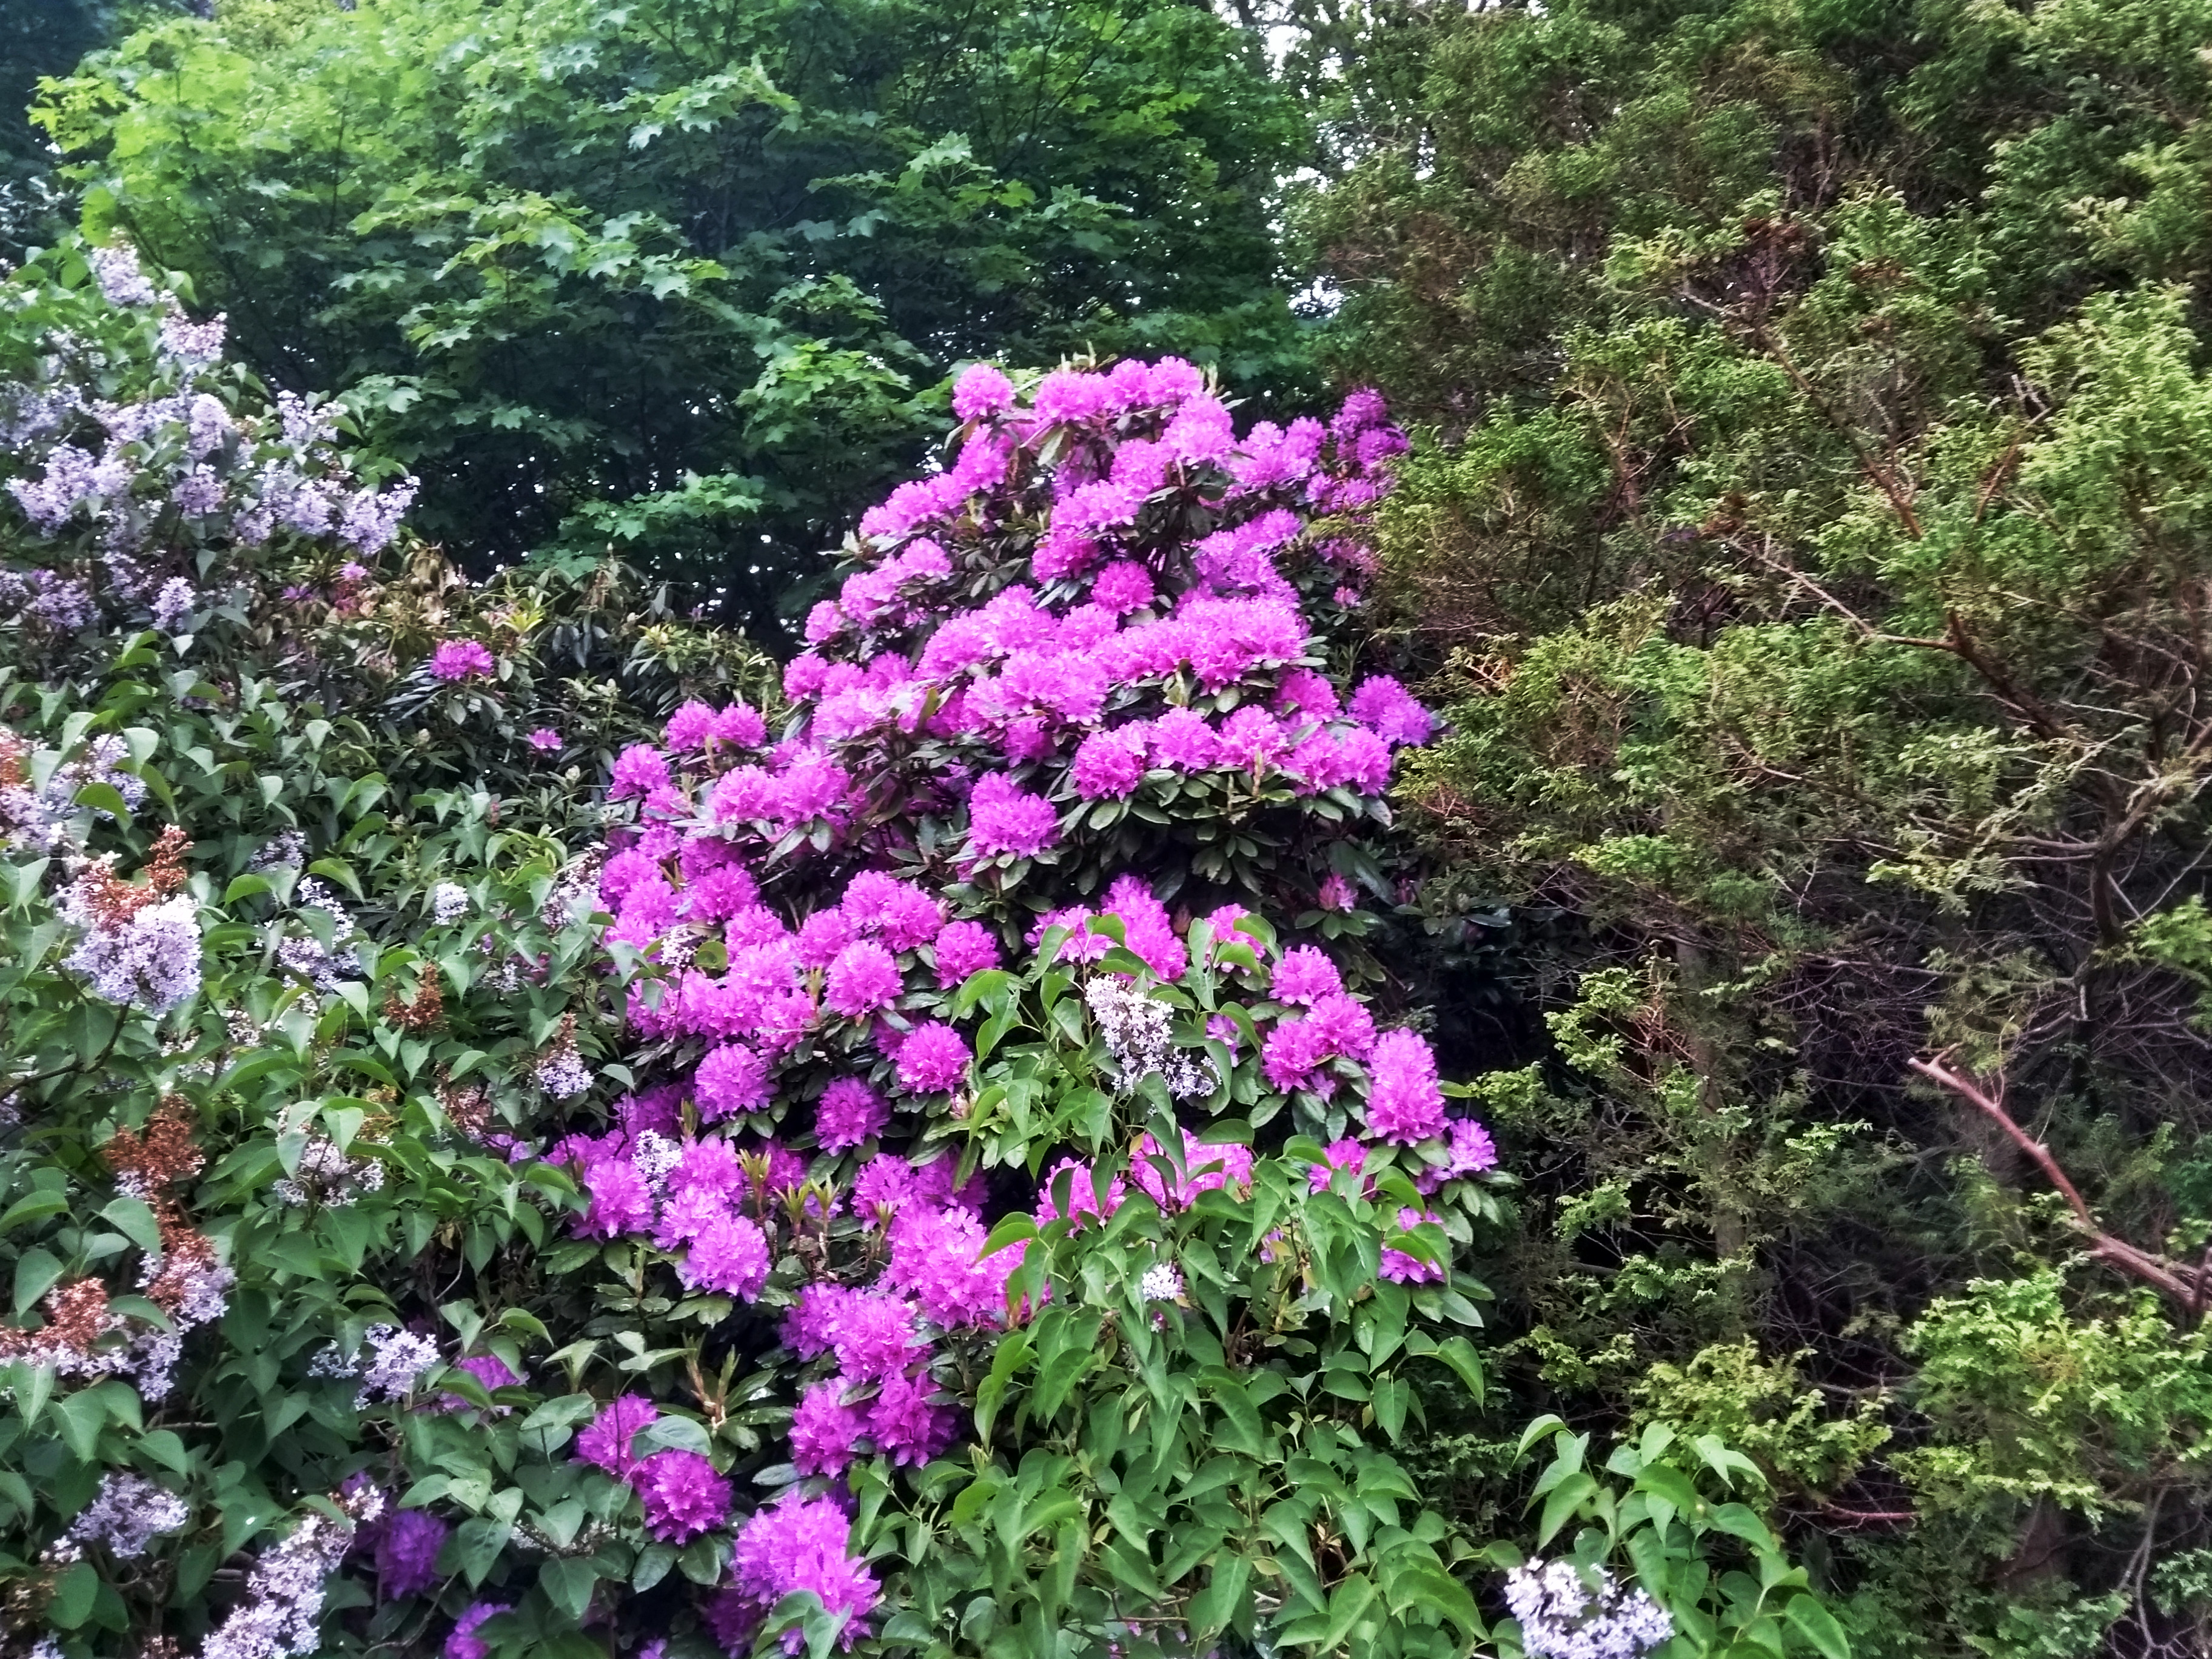 rhododendrons-2020-05-22-3648x2736-1